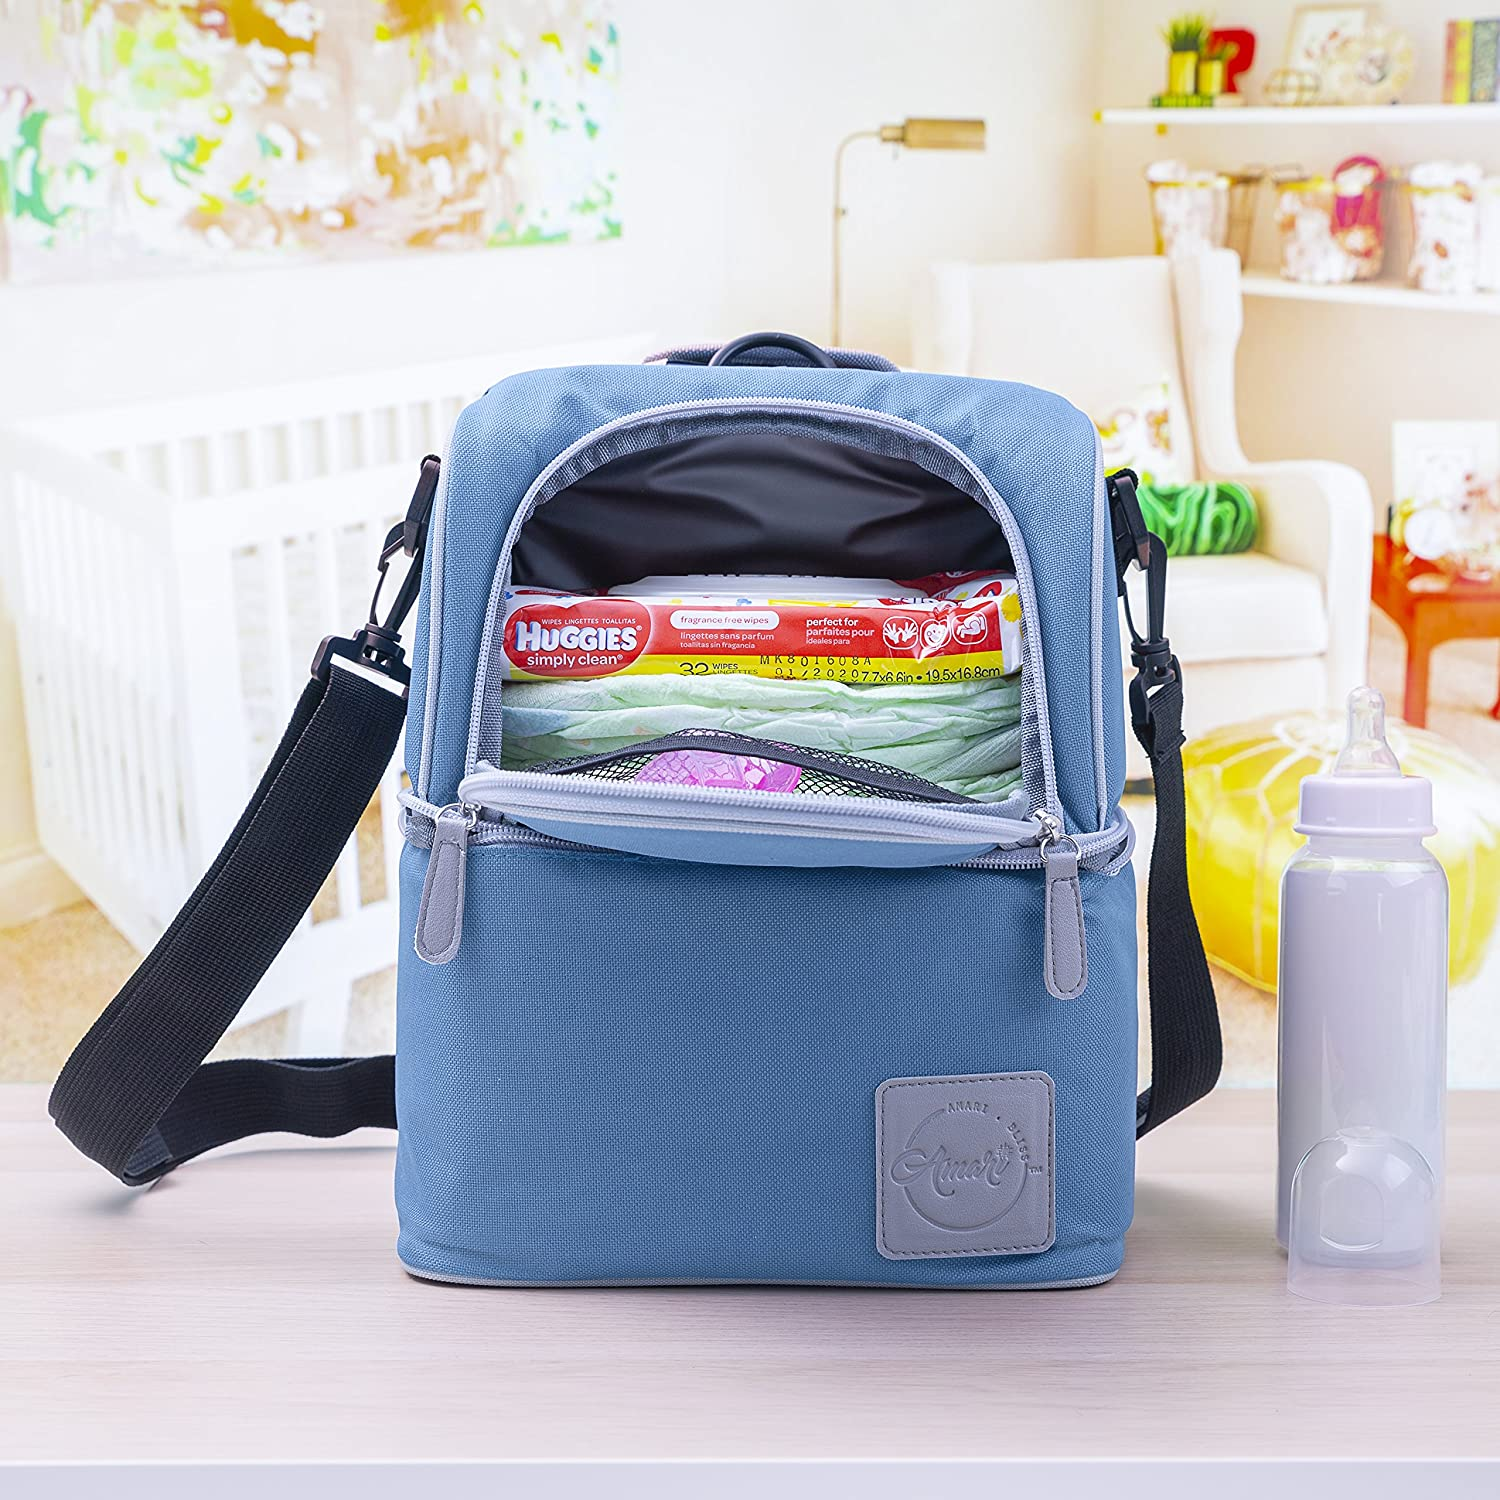 Diaper Bag Organizer - Insulated Diaper Bag Backpack with Ice Pack - Diaper Bag Cooler Lunch Box - Mommy Travel Bookbag - Baby Bottle Breast Milk Pump Breastfeeding Travel Tote (Blue/Grey) Amari Bliss